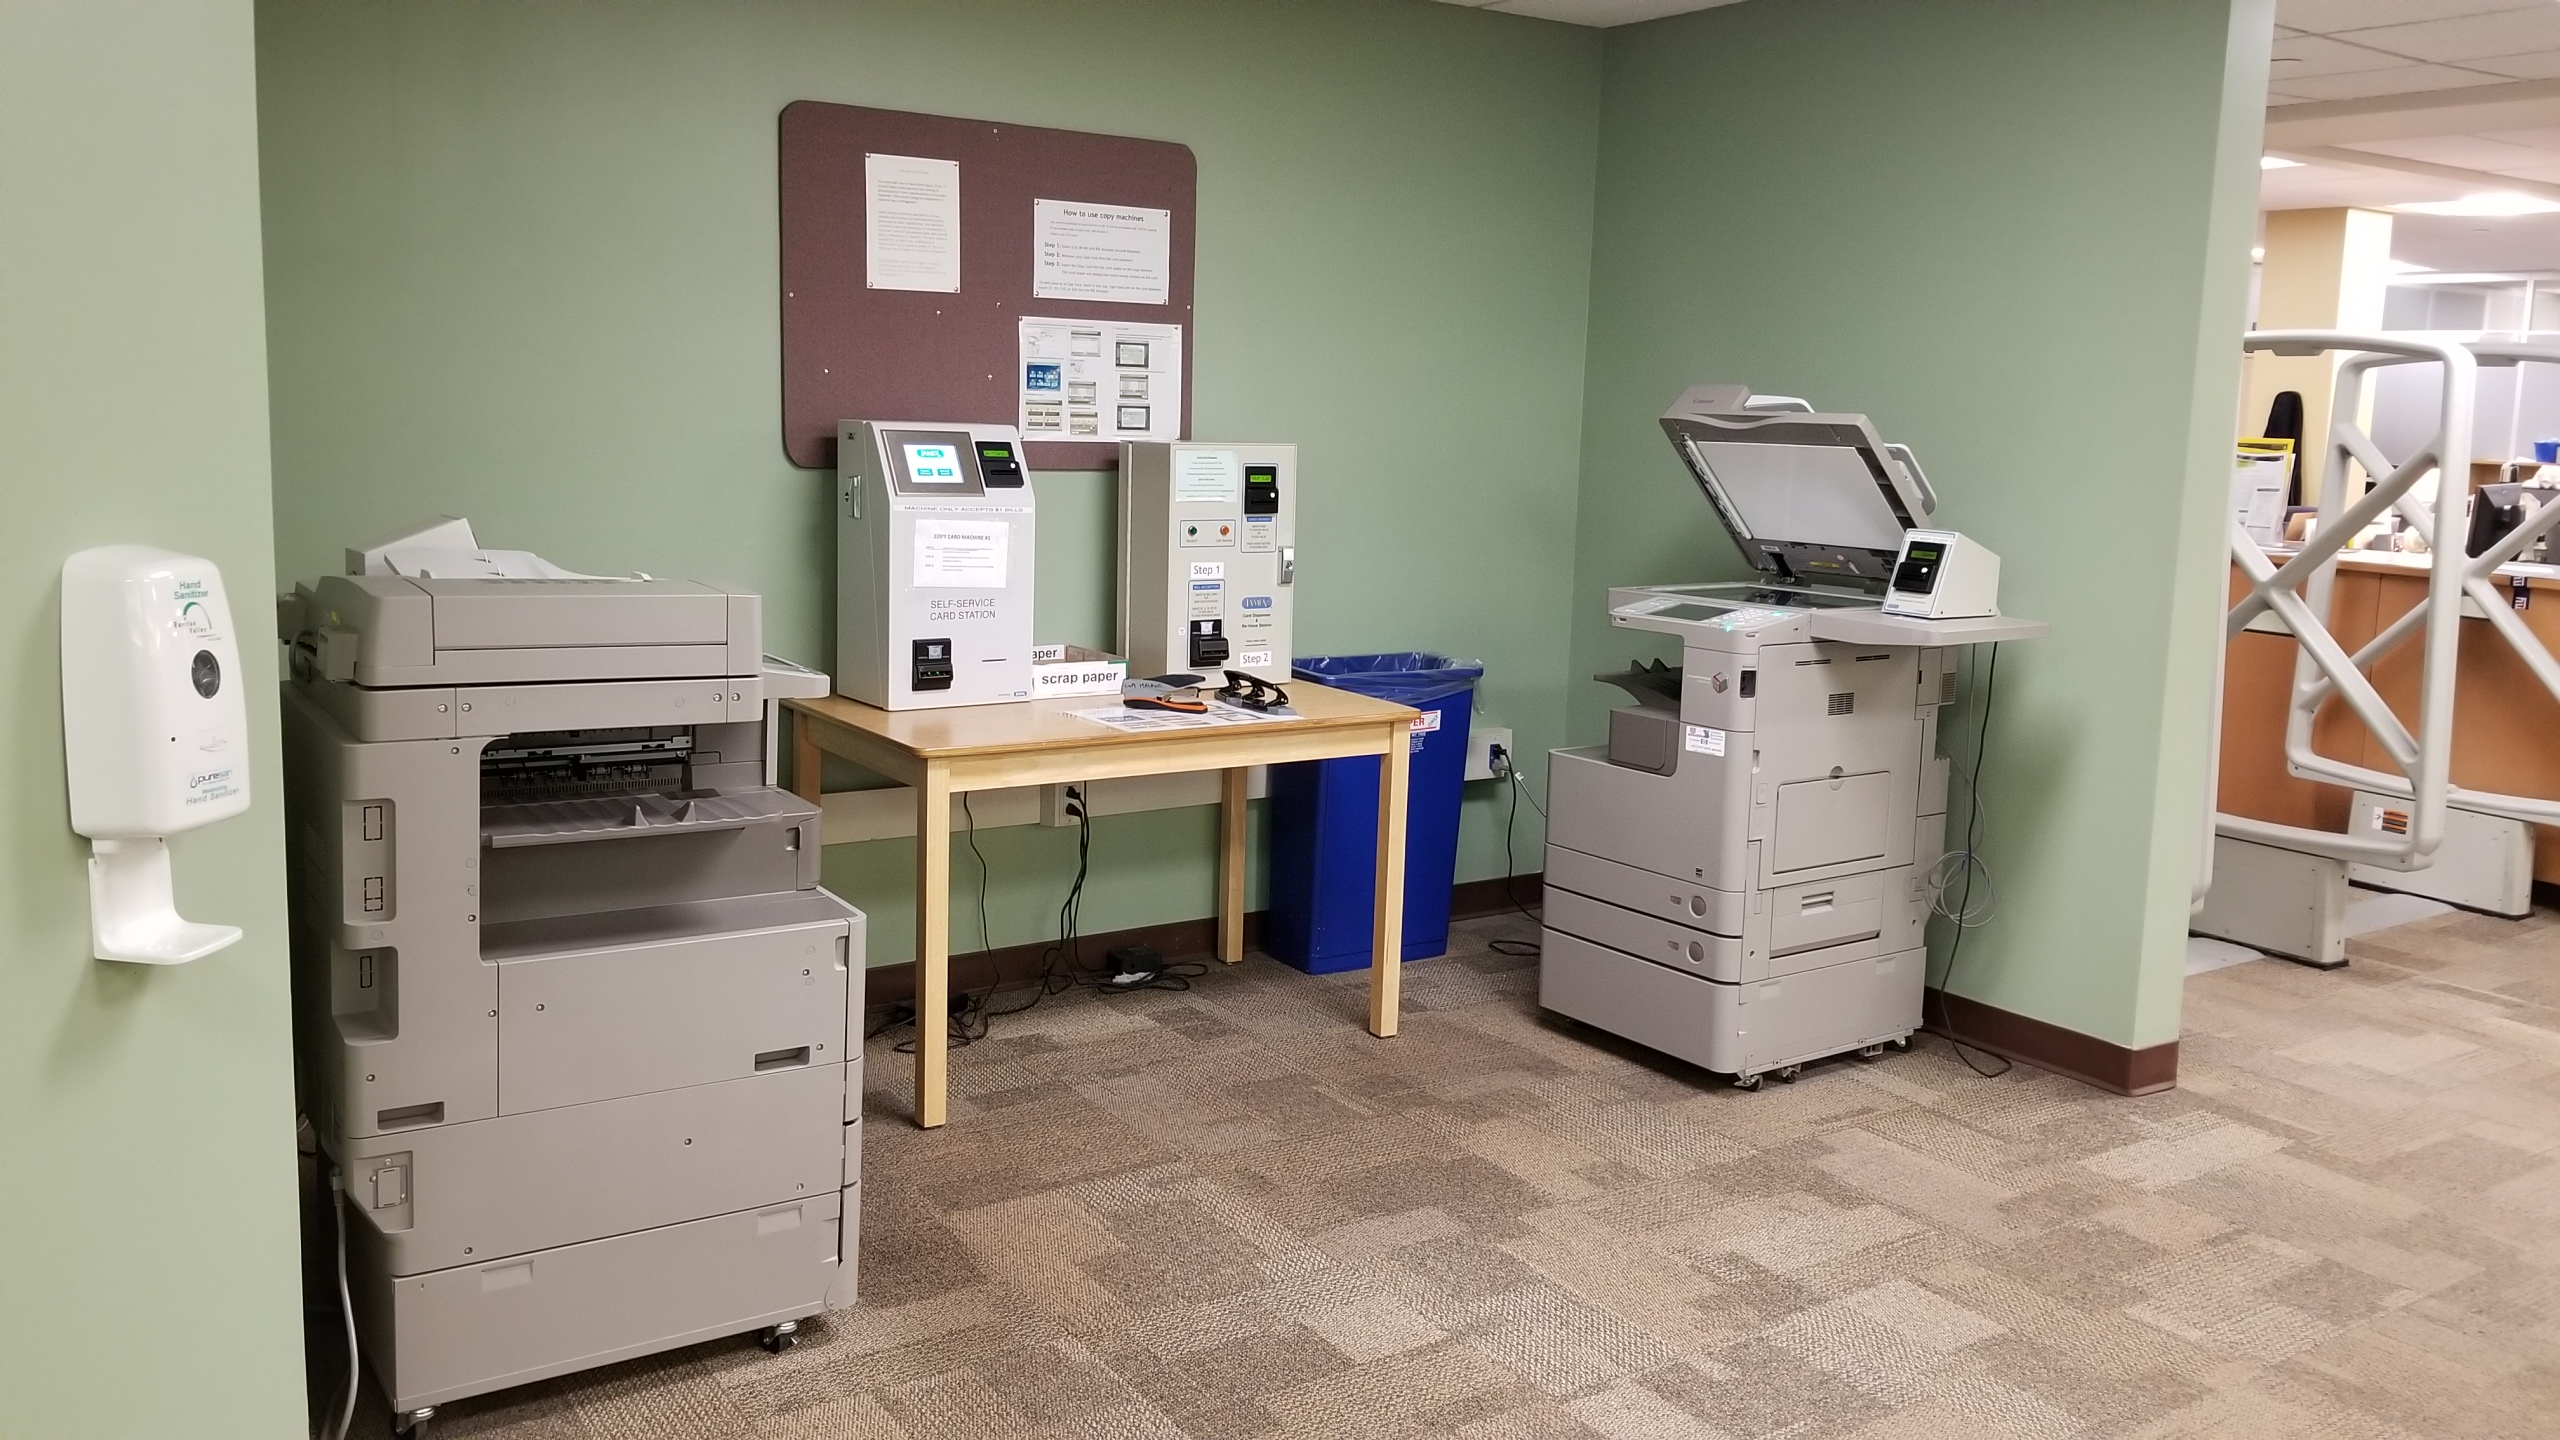 image of photocopiers in library